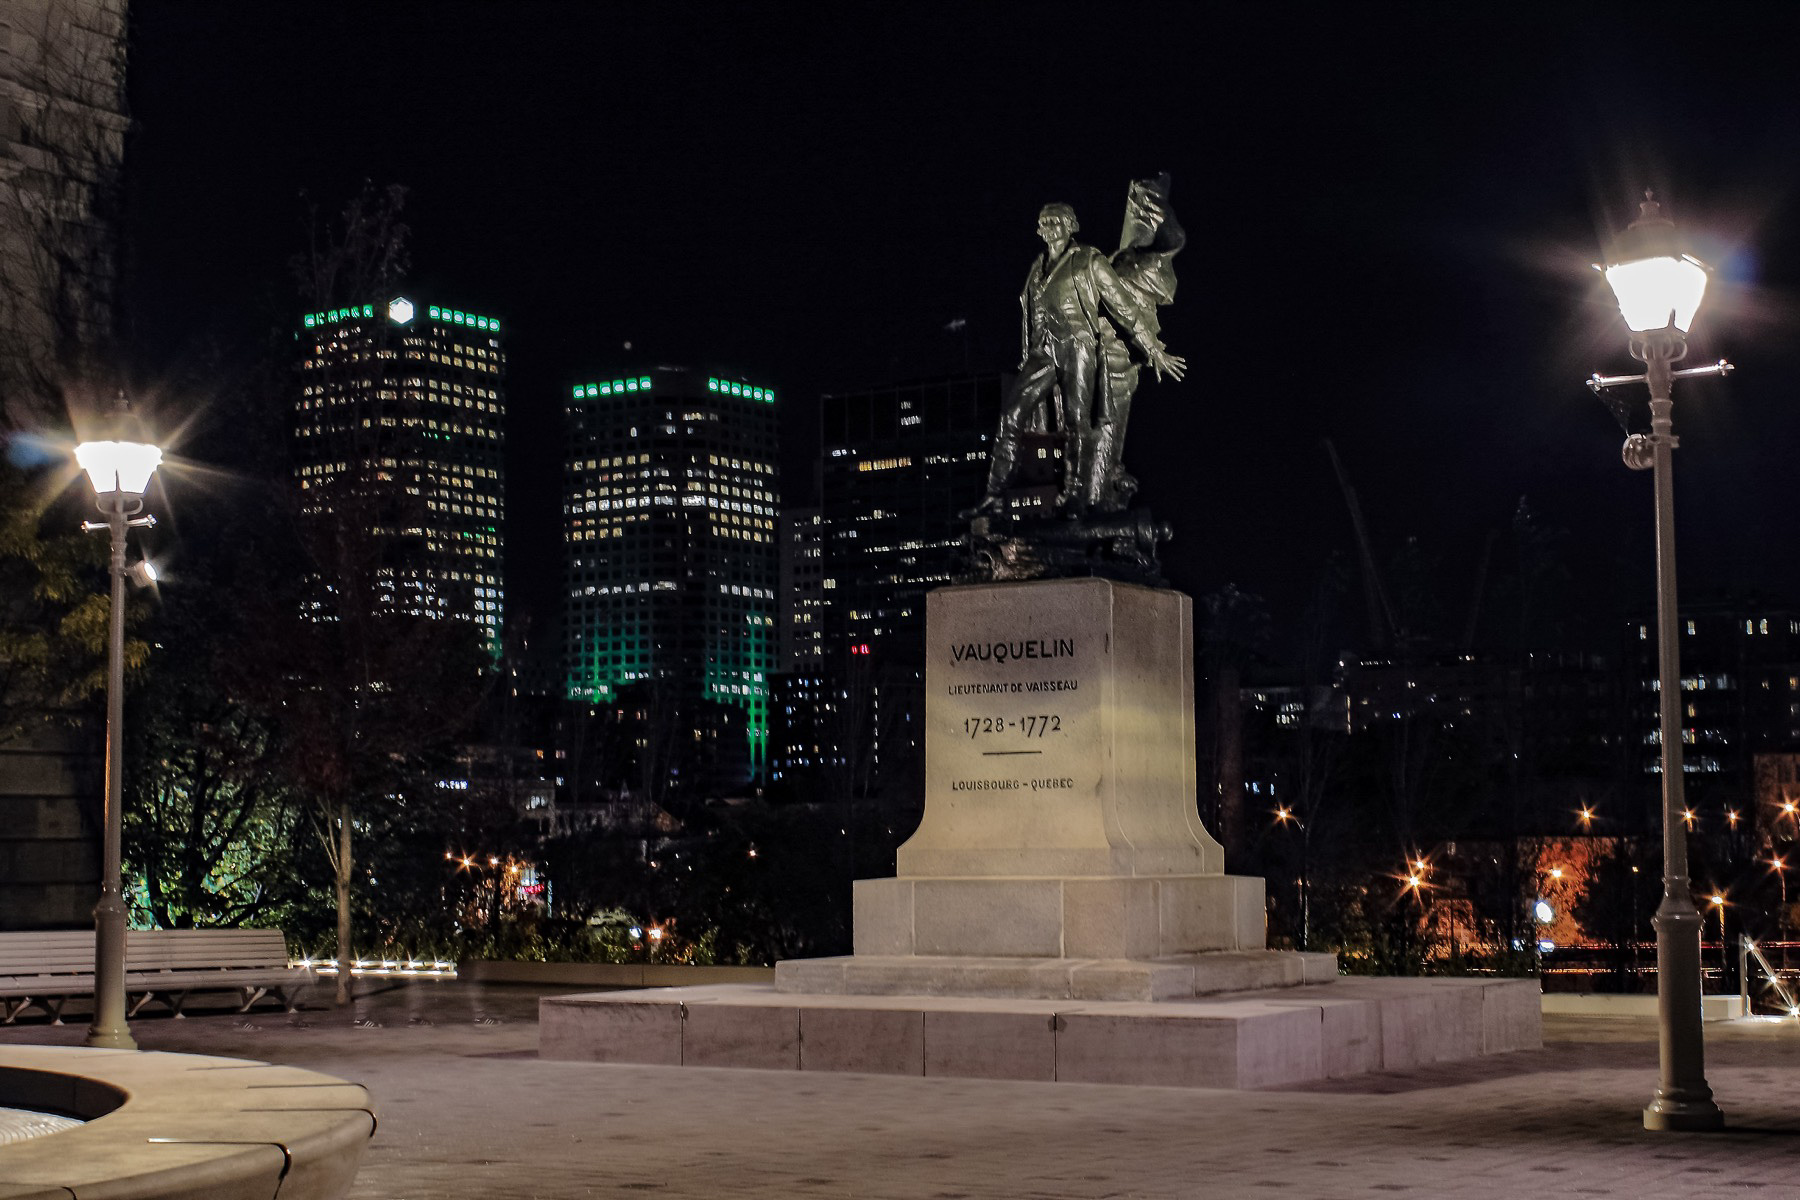 Square of vauquelin in montreal national urban design awards 2018